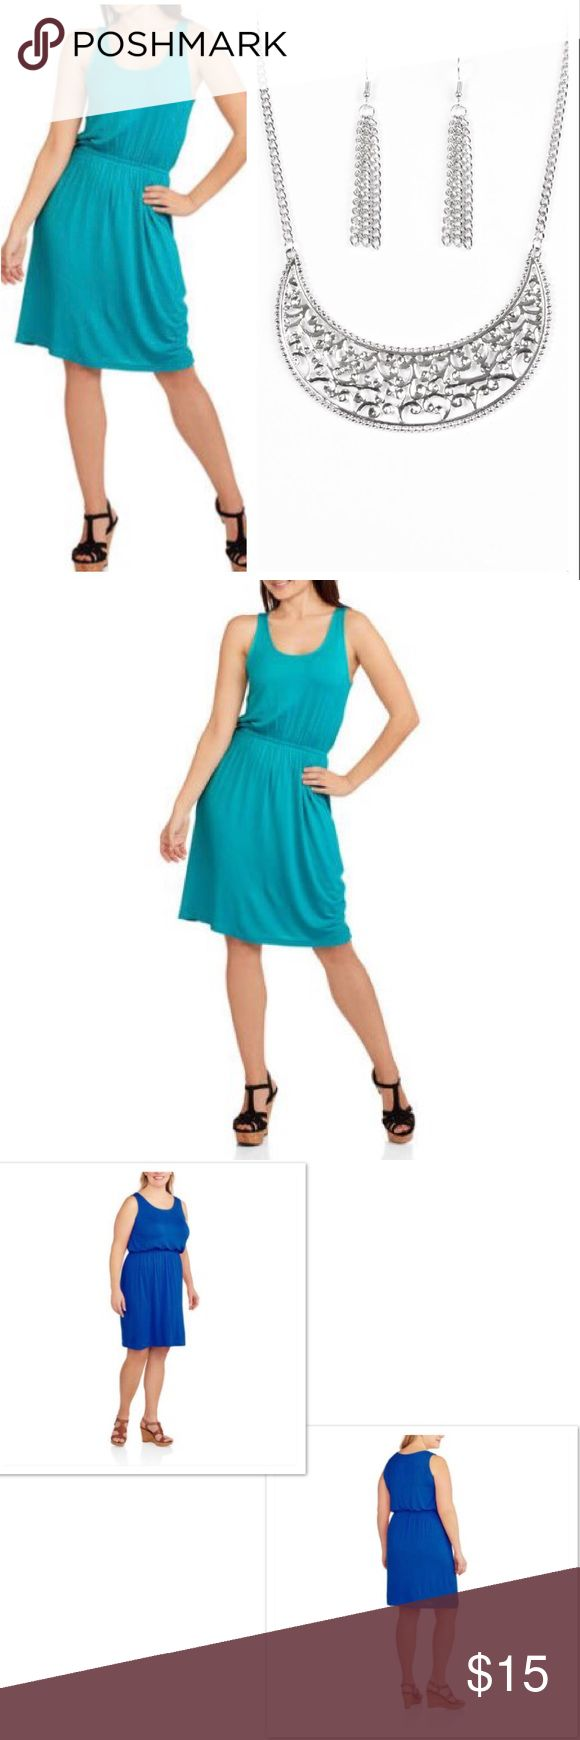 NwT Aqua Tank Dress & Silver Necklace w Earrings NWT Aqua Color Dress,The Faded Glory Women's Casual Scoop Neck Dress with Flattering Waist Seaming is a breezy and chic top that's perfect. It's made of soft and lightweight rayon and has a flattering elastic waistband that flatters your figure. This dress also has a generous scoop neckline that's breathable and nonrestrictive, as well as a knee-length hem. ❌Price Firm❌ 95% rayon, 5% spandex Faded Glory Dresses Midi